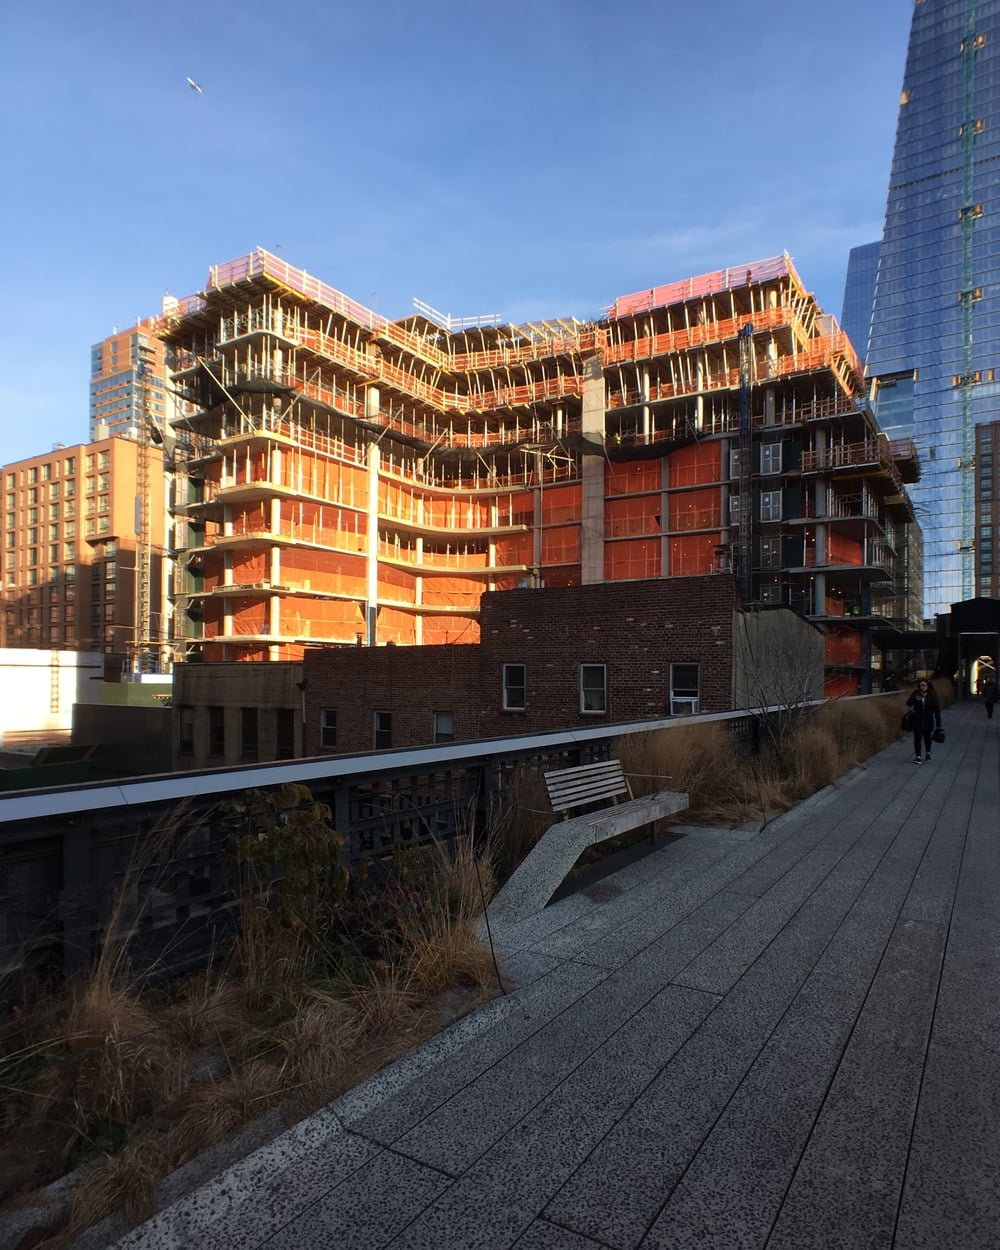 Southeast corner from the High Line.